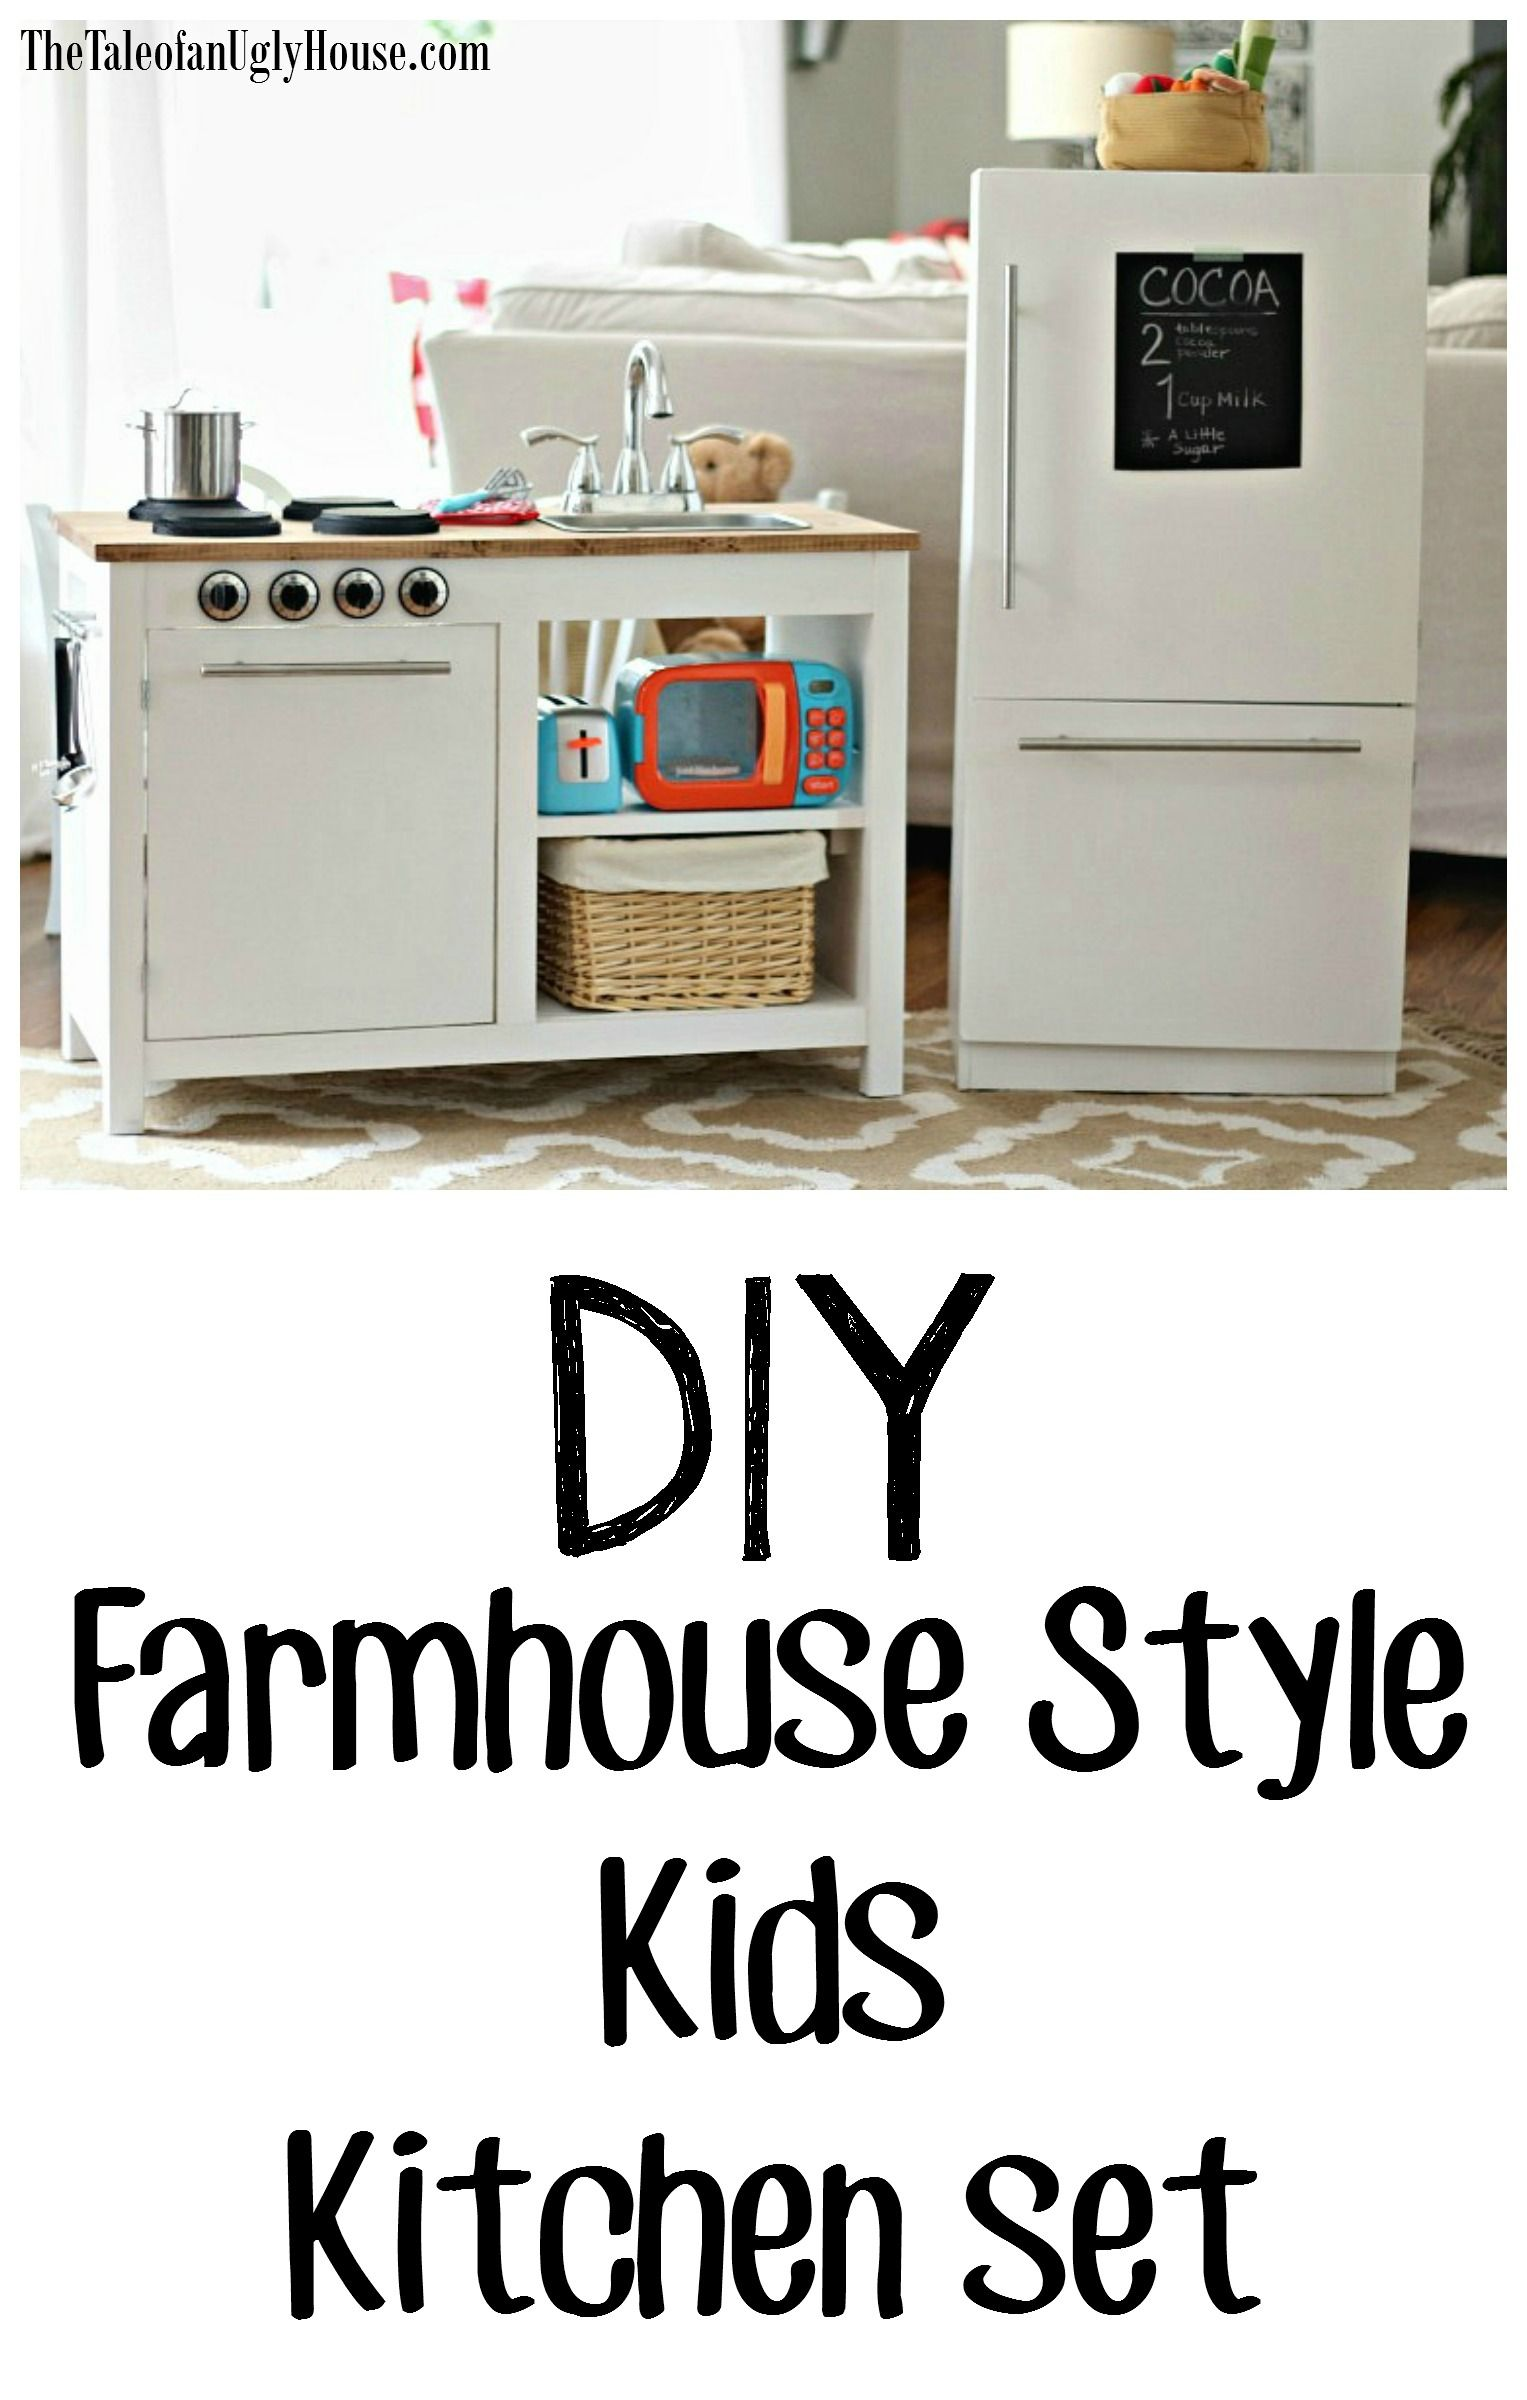 DIY Famhouse style kids play kitchen set. Free Plans | DIY ...